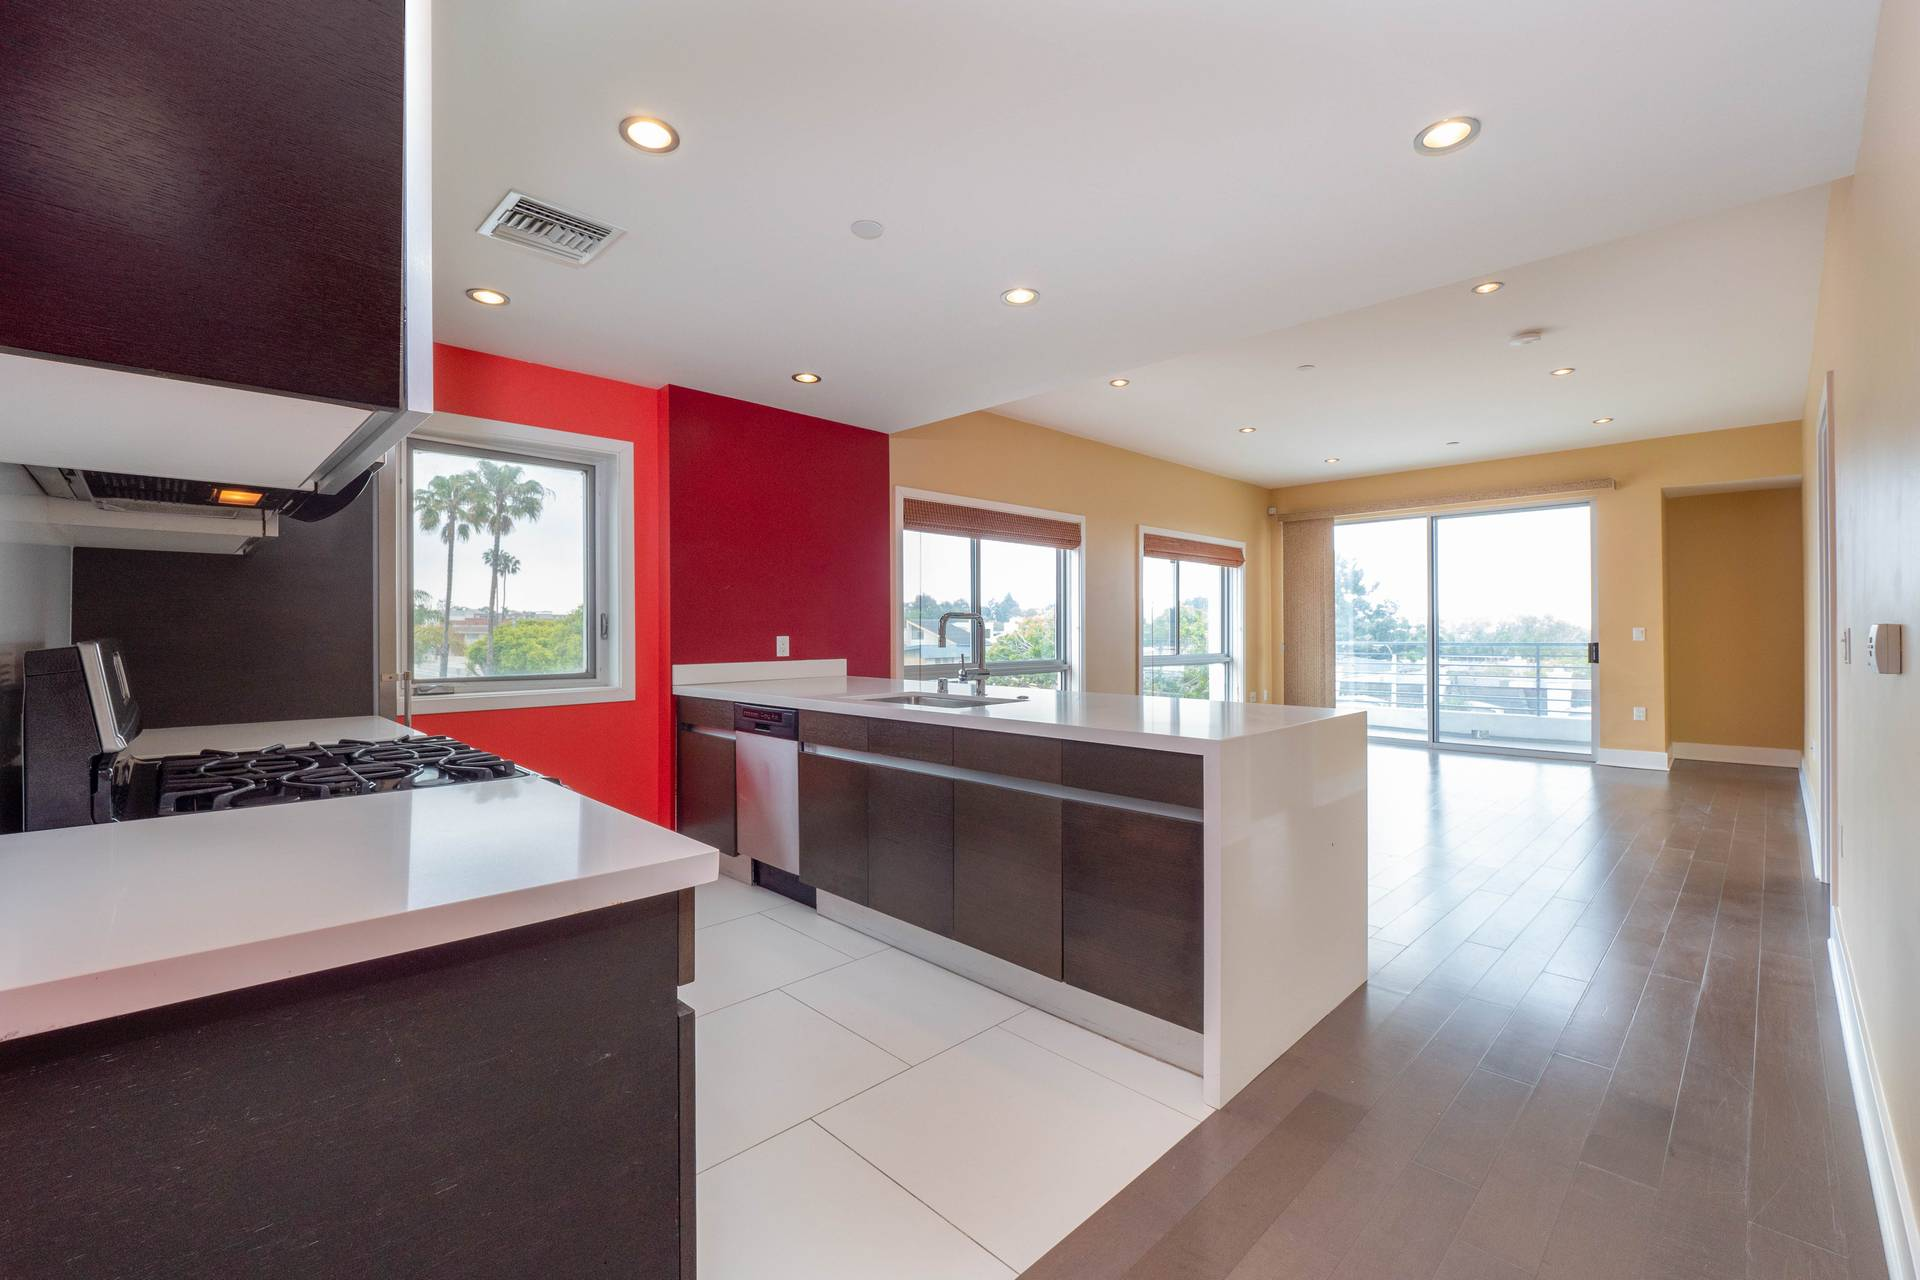 7857 W Manchester PH3 | Playa del Rey | Offered at $735,000